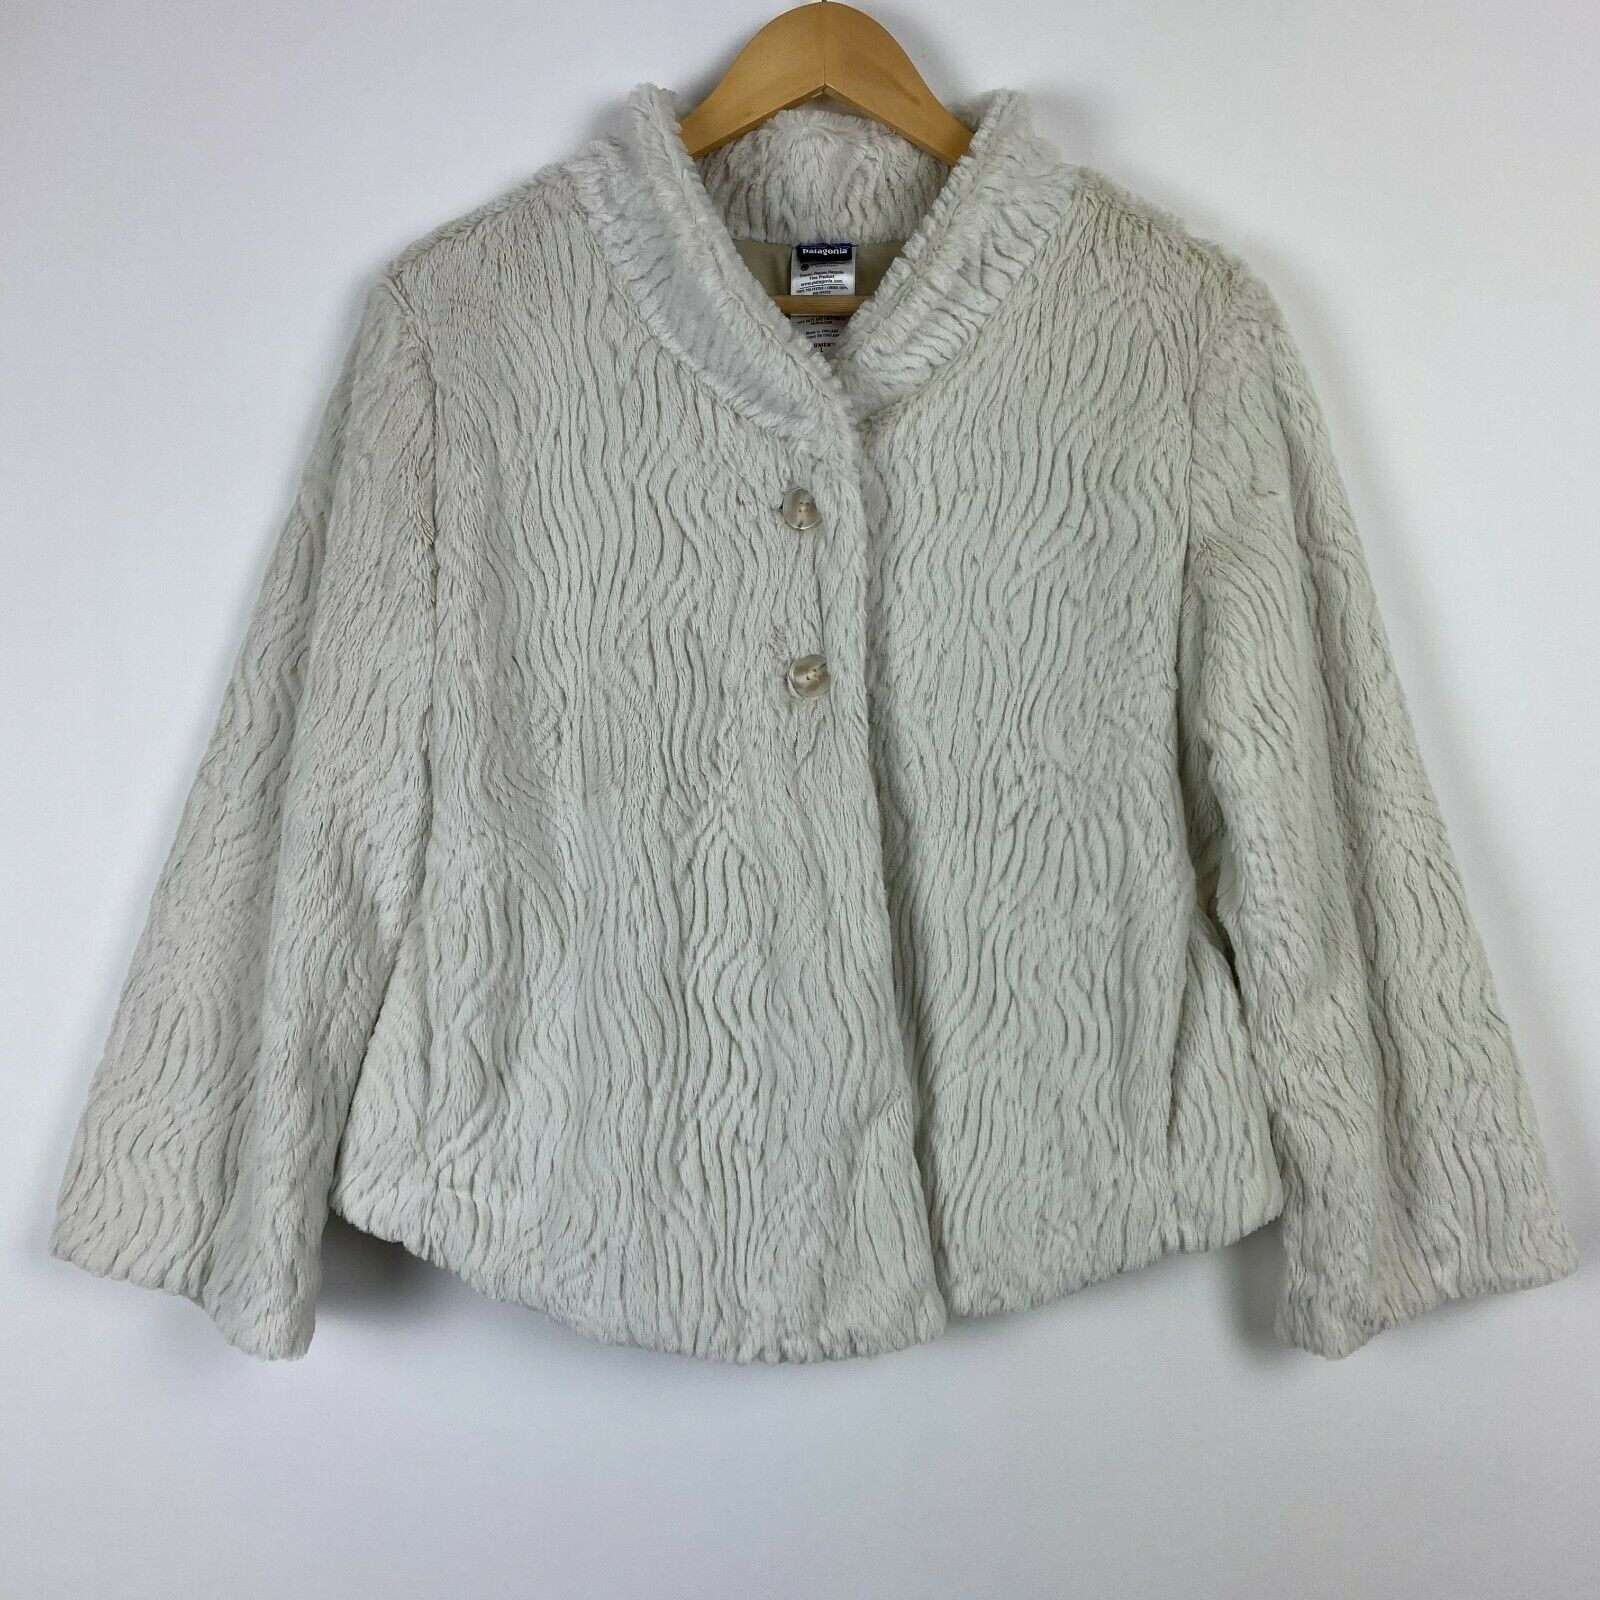 Patagonia Large Off White Fuzzy Furry Pelage Jacket Coat Womens Lined Pockets